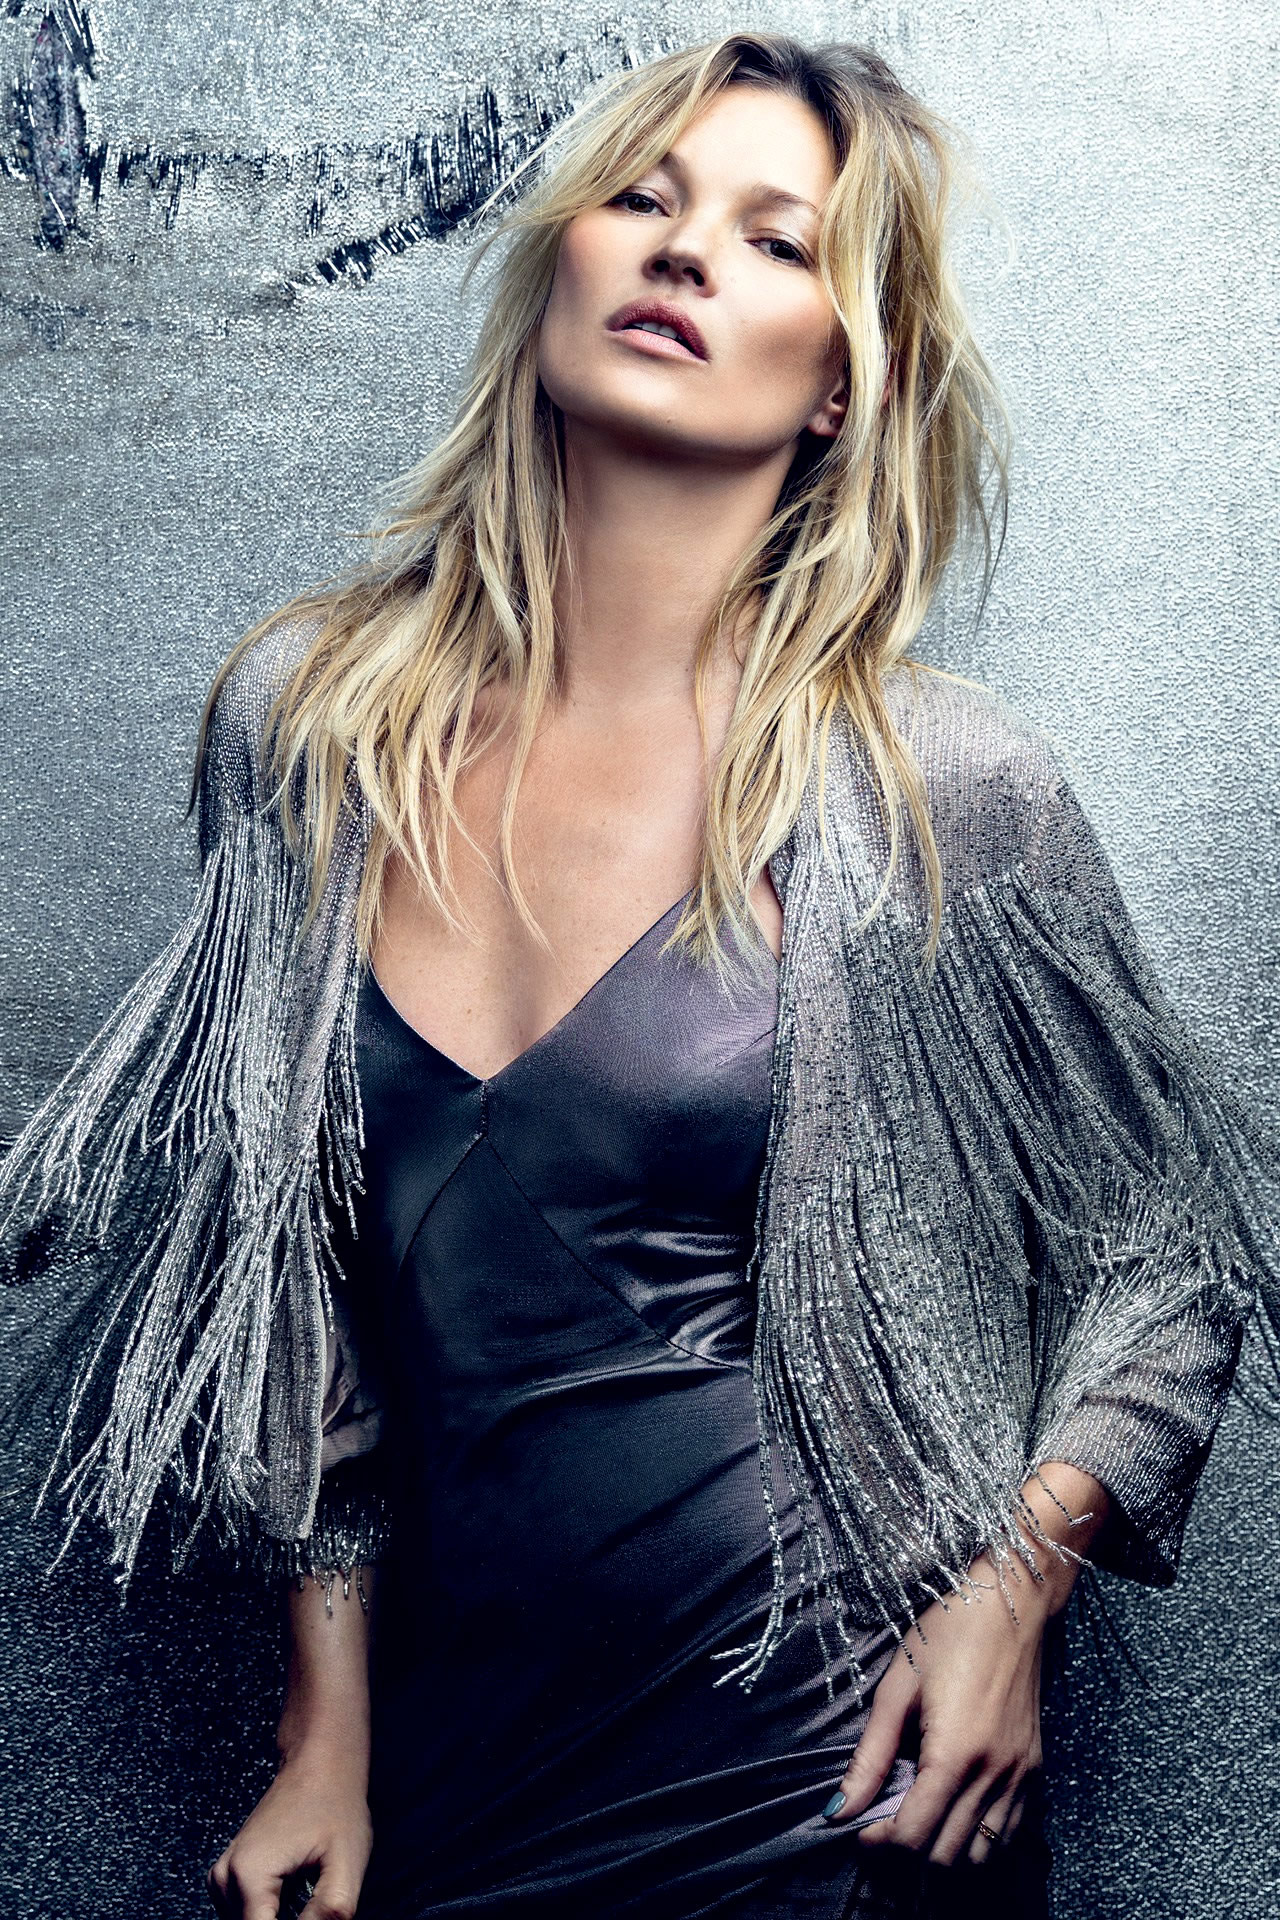 Res: 1280x1920, Kate Moss High Quality Background on Walls Cover